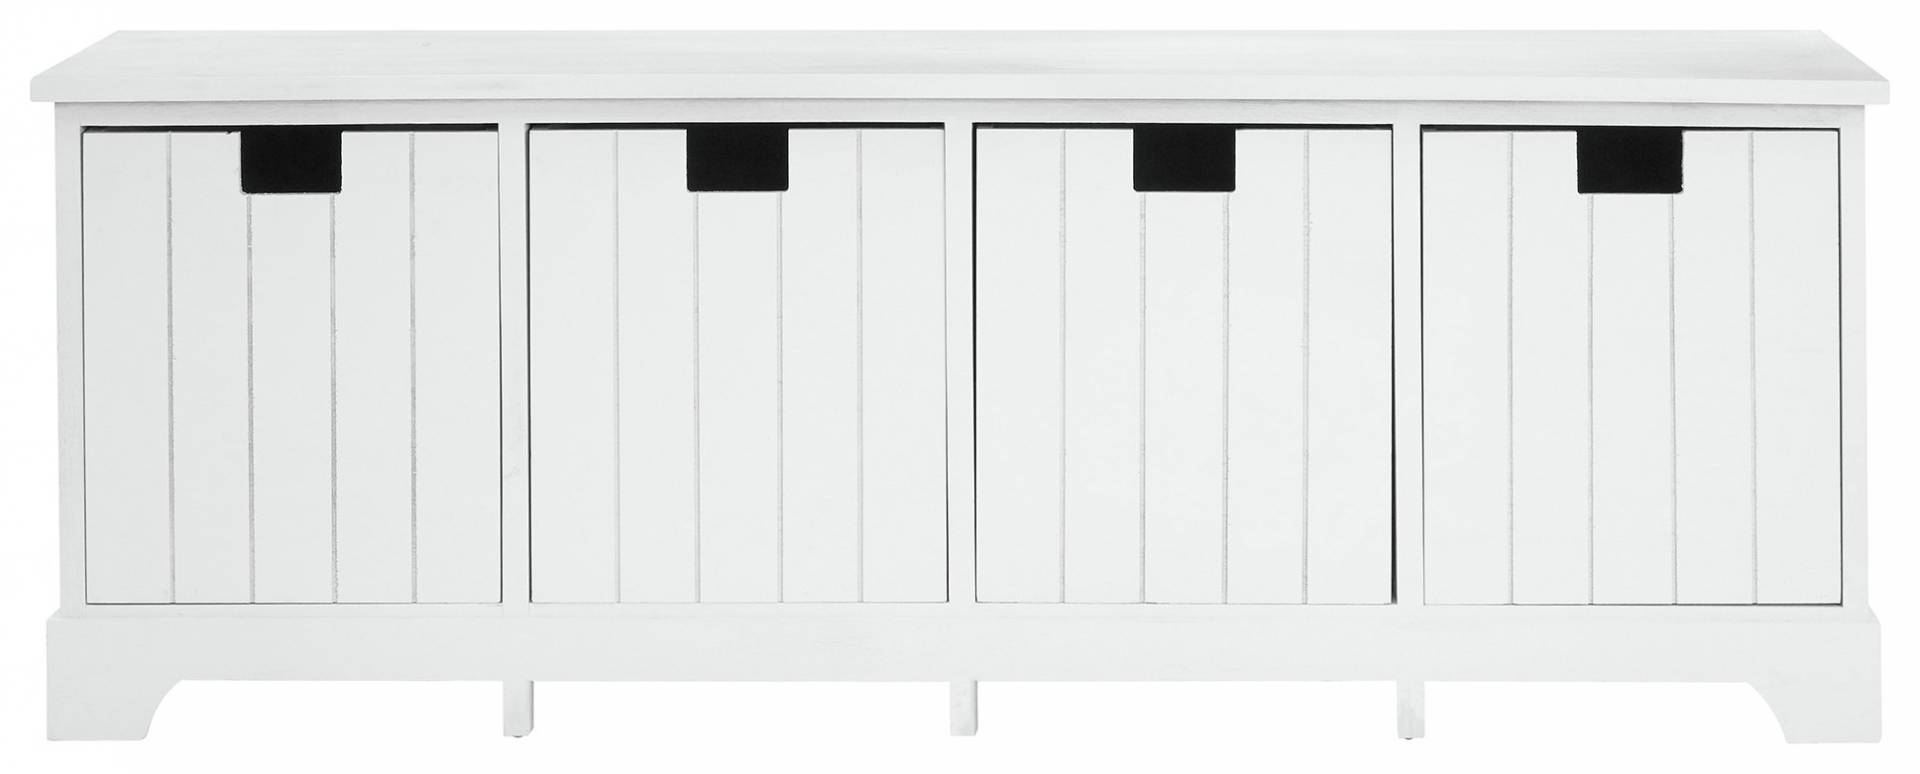 Premier Housewares New England Bench Drawer Unit - White. at Argos from Premier housewares